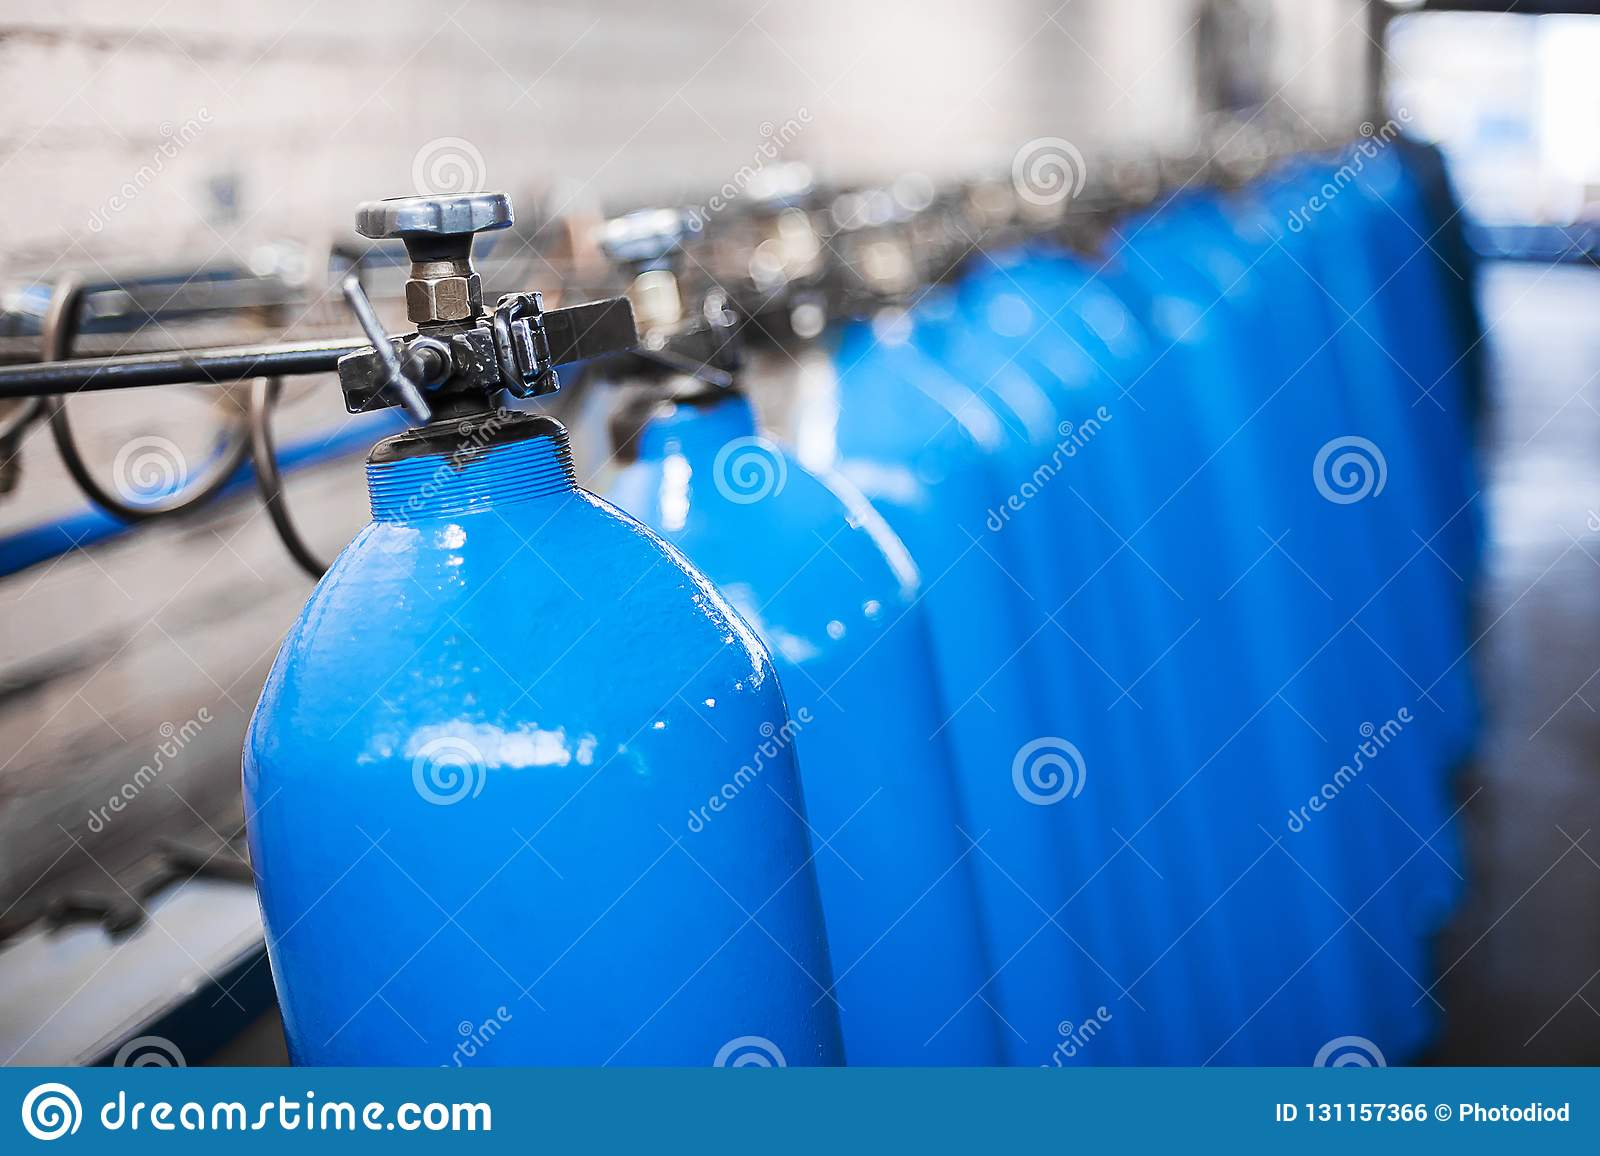 Oxygen Cylinder With Compressed Gas  Blue Oxygen Tanks For